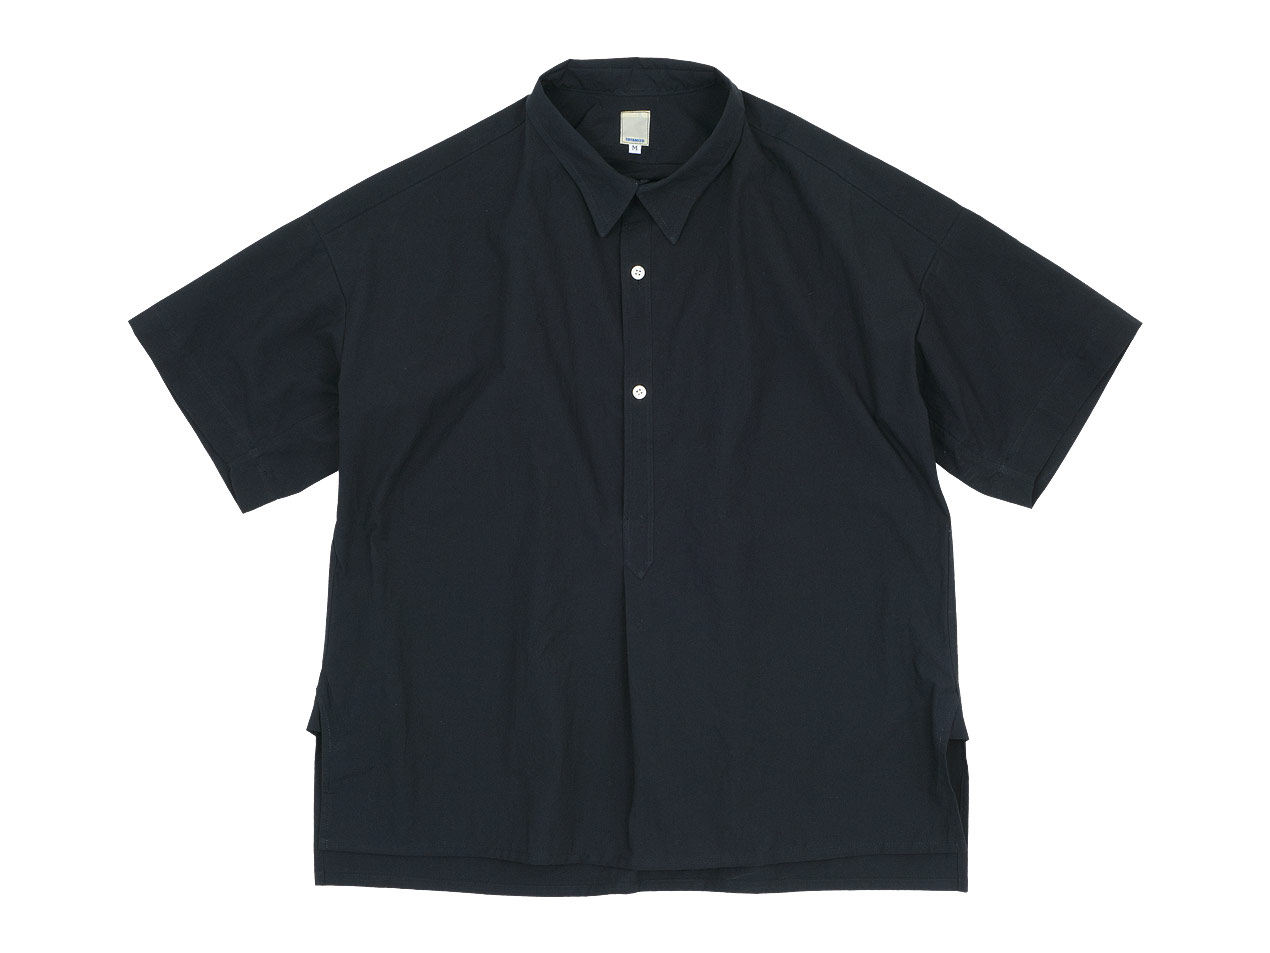 TATAMIZE -SIMME- HALF SLEEVE SHIRTS